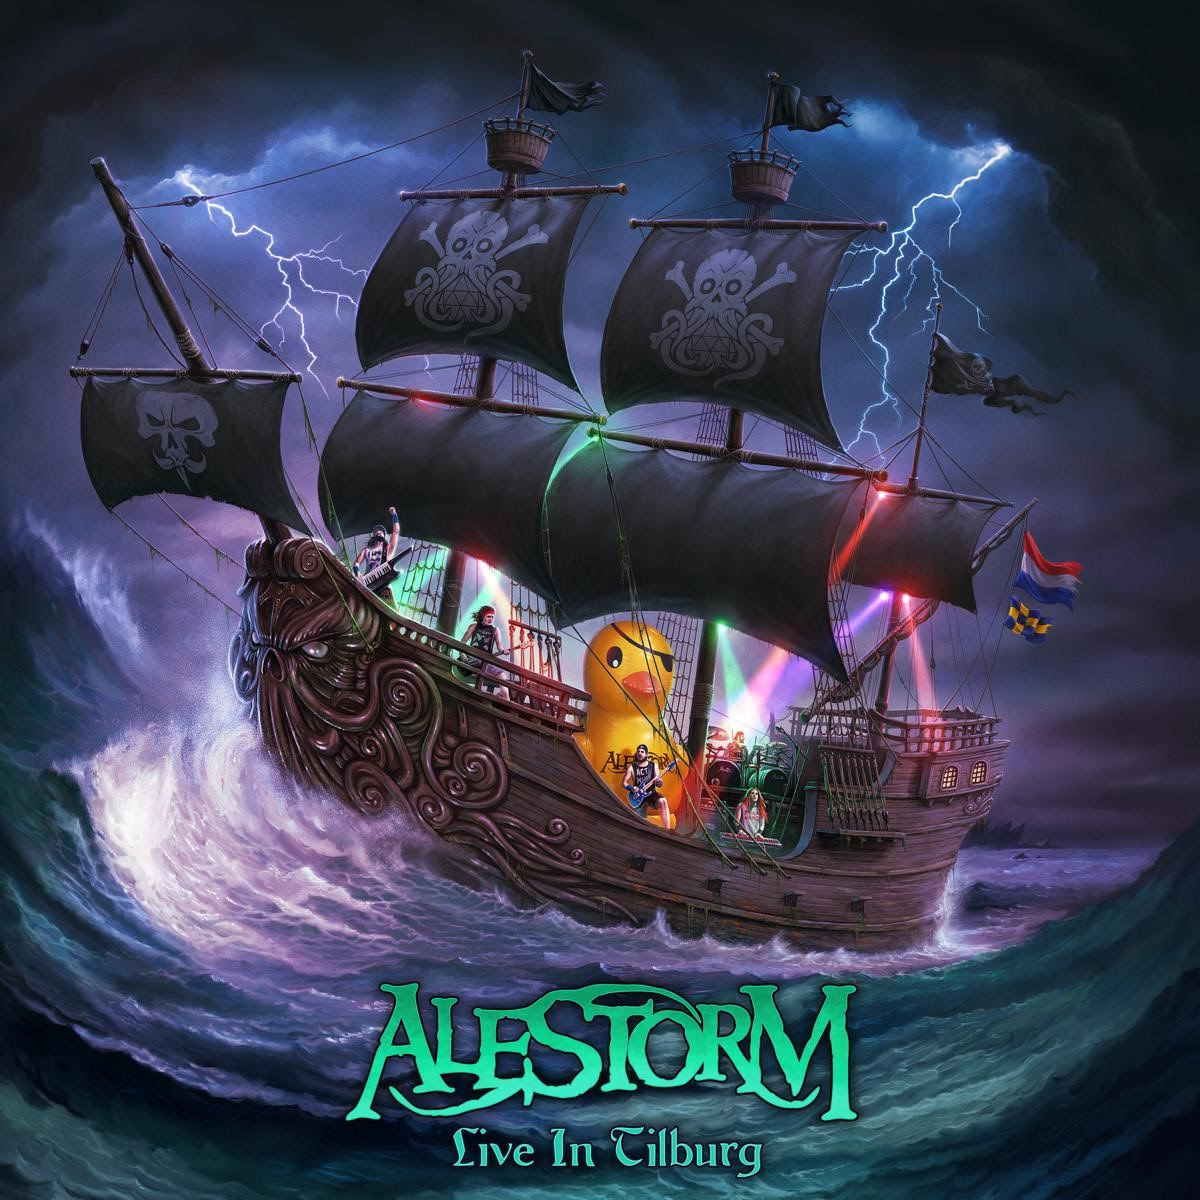 ALESTORM to Release New Live Album & DVD/BluRay, Live in Tilburg, on May 28!